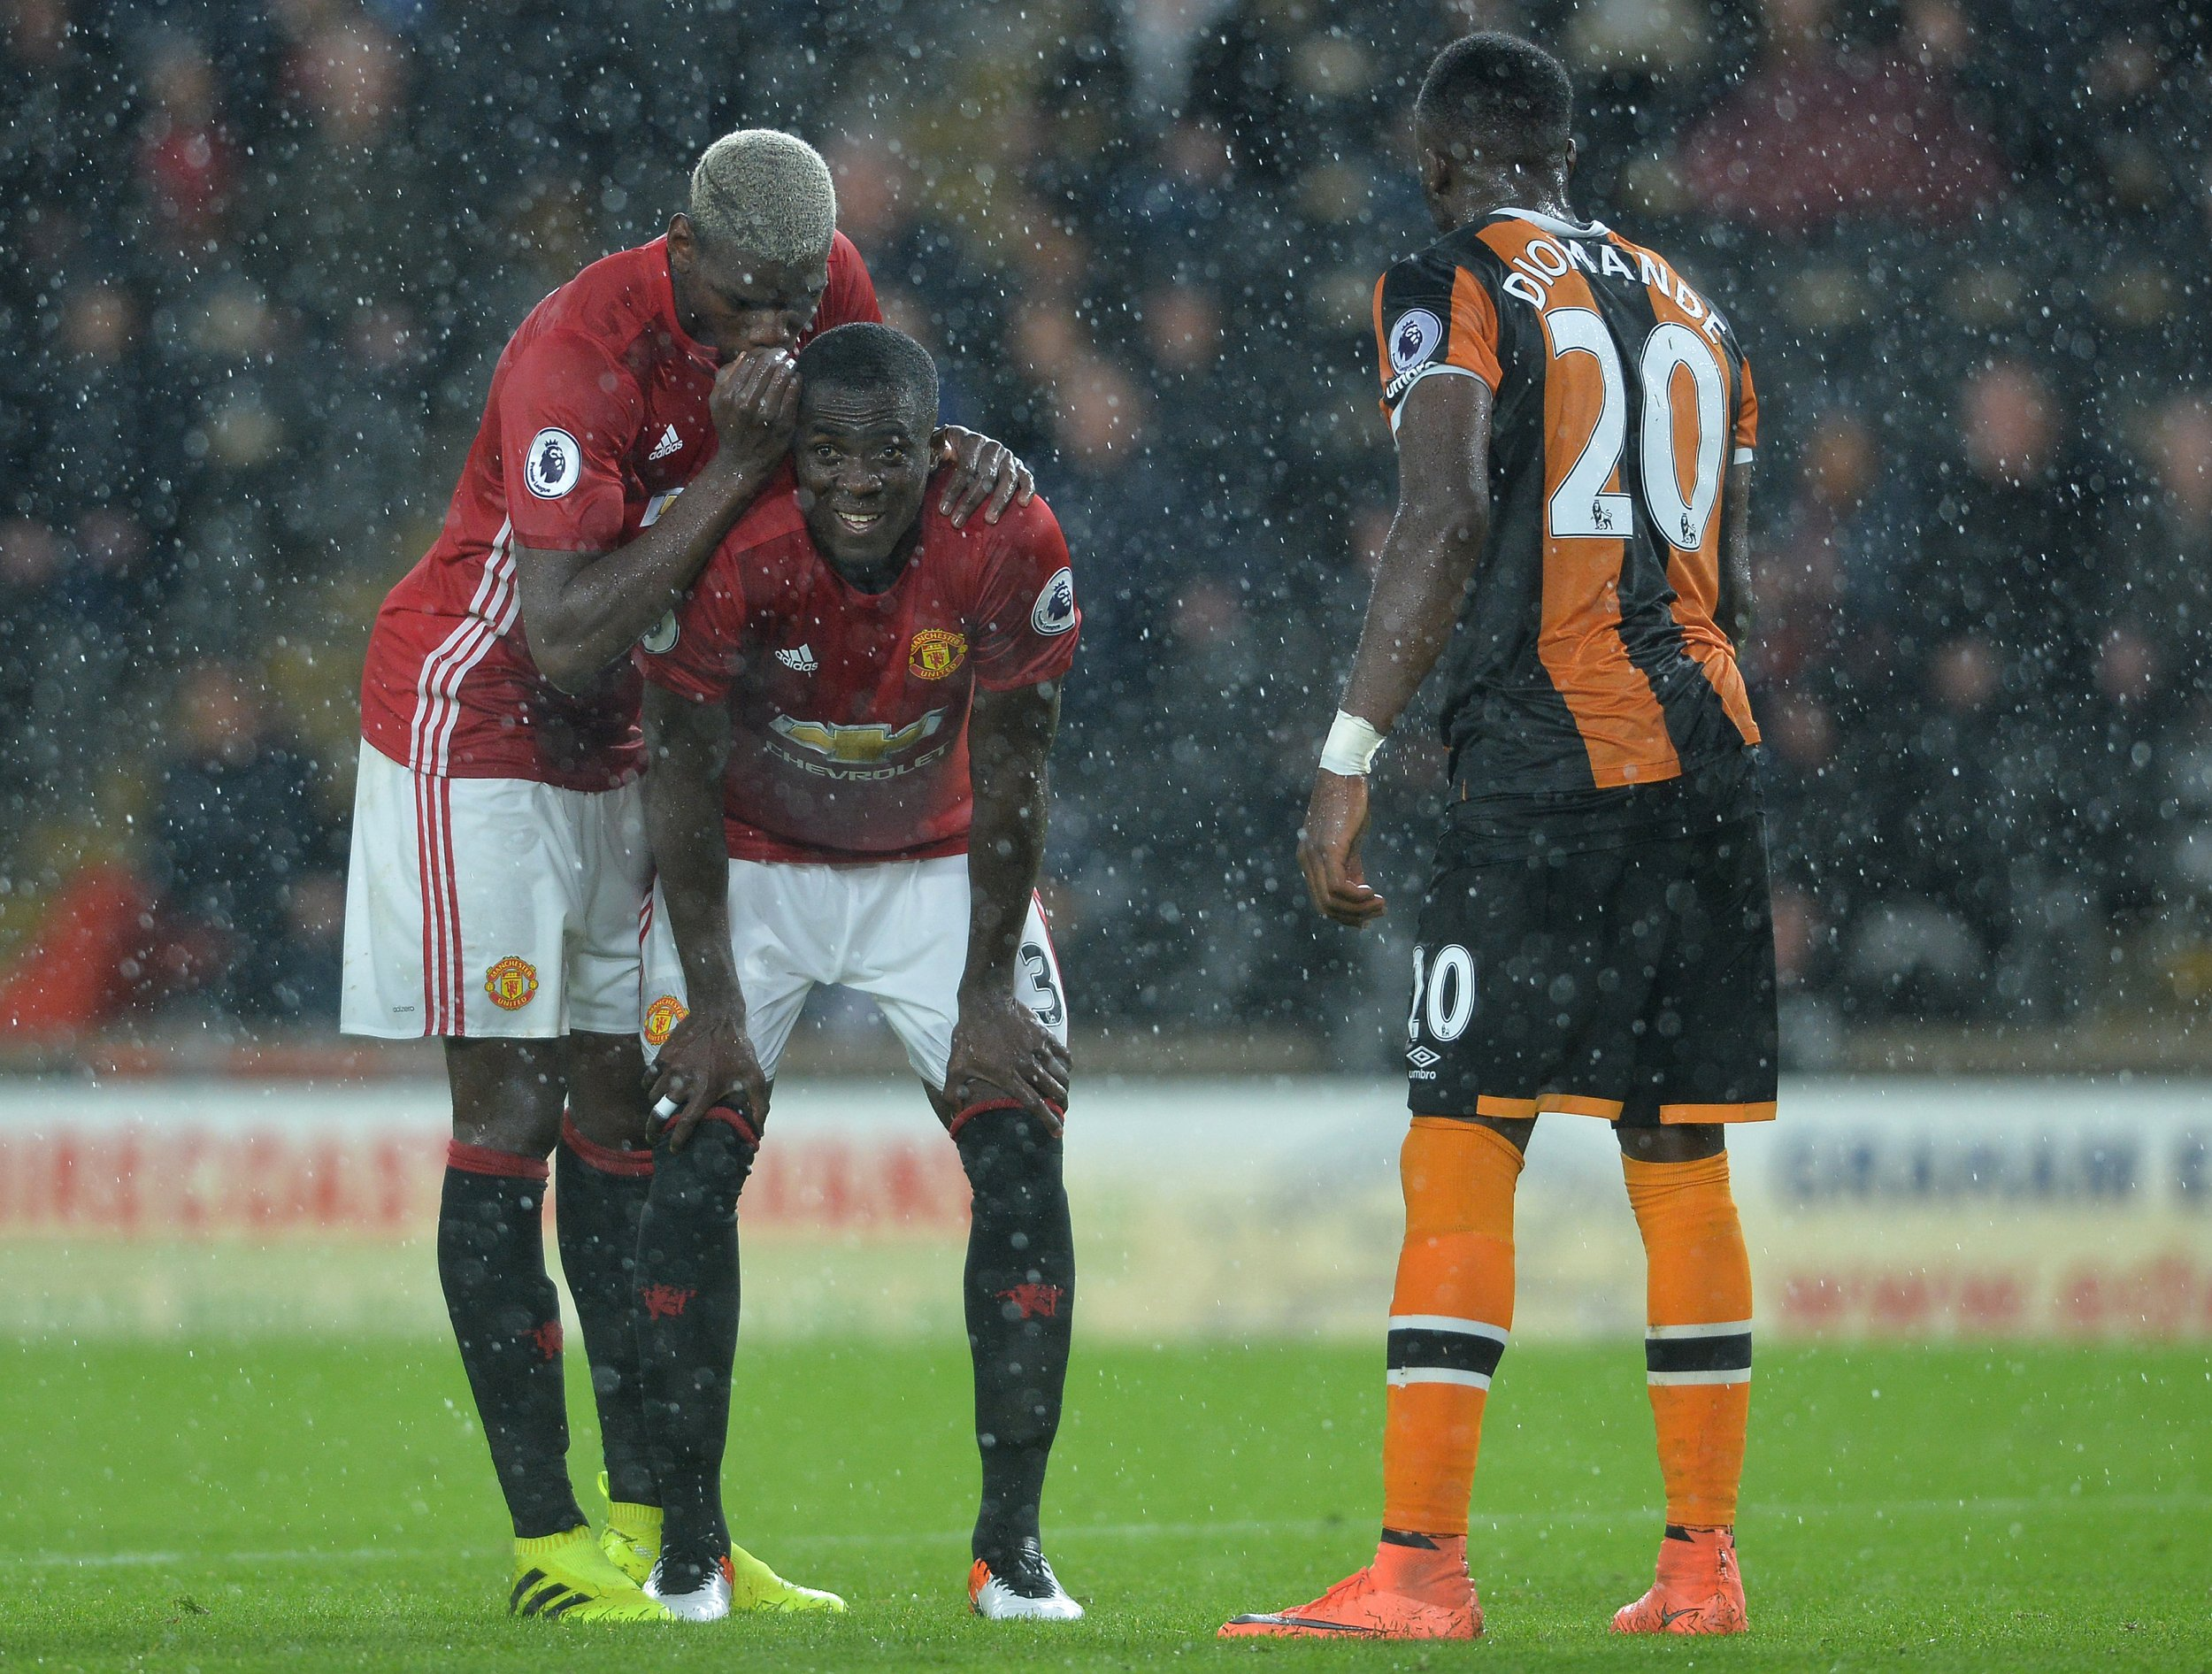 Paul Pogba, left, and Eric Bailly, second from left, of Manchester United at KC Stadium, Hull.